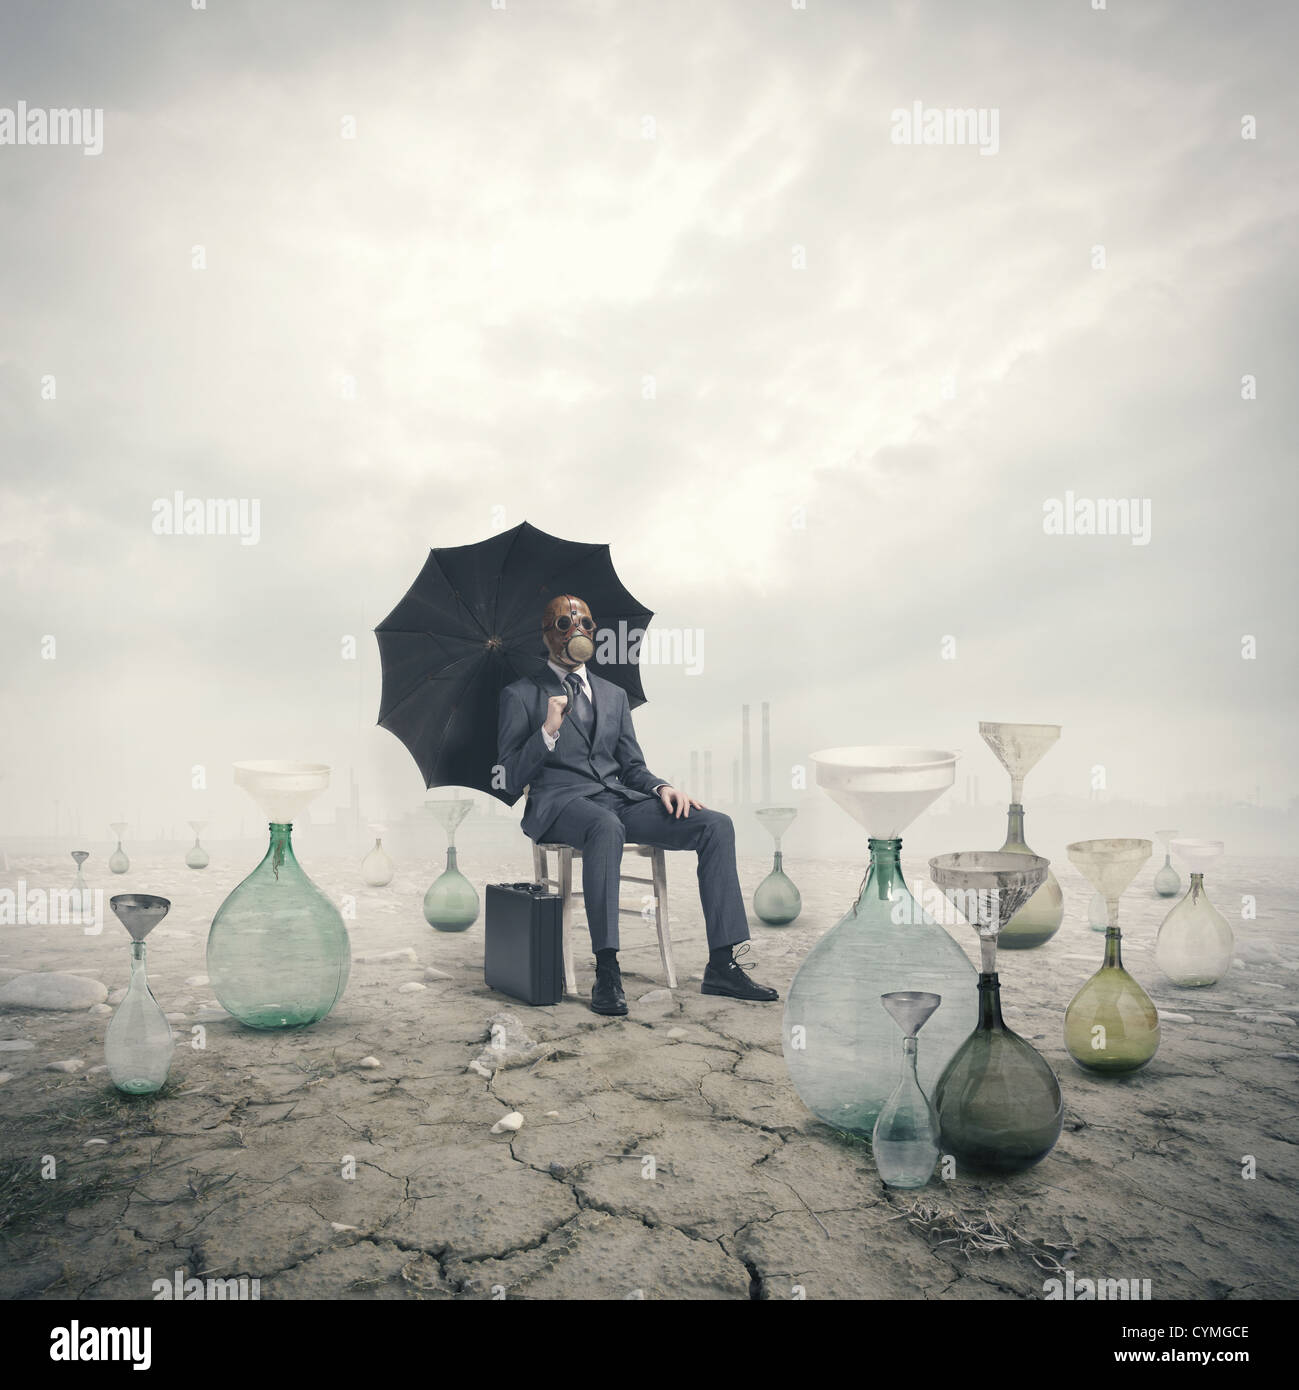 concept of global warming: Environmental Damage - Stock Image